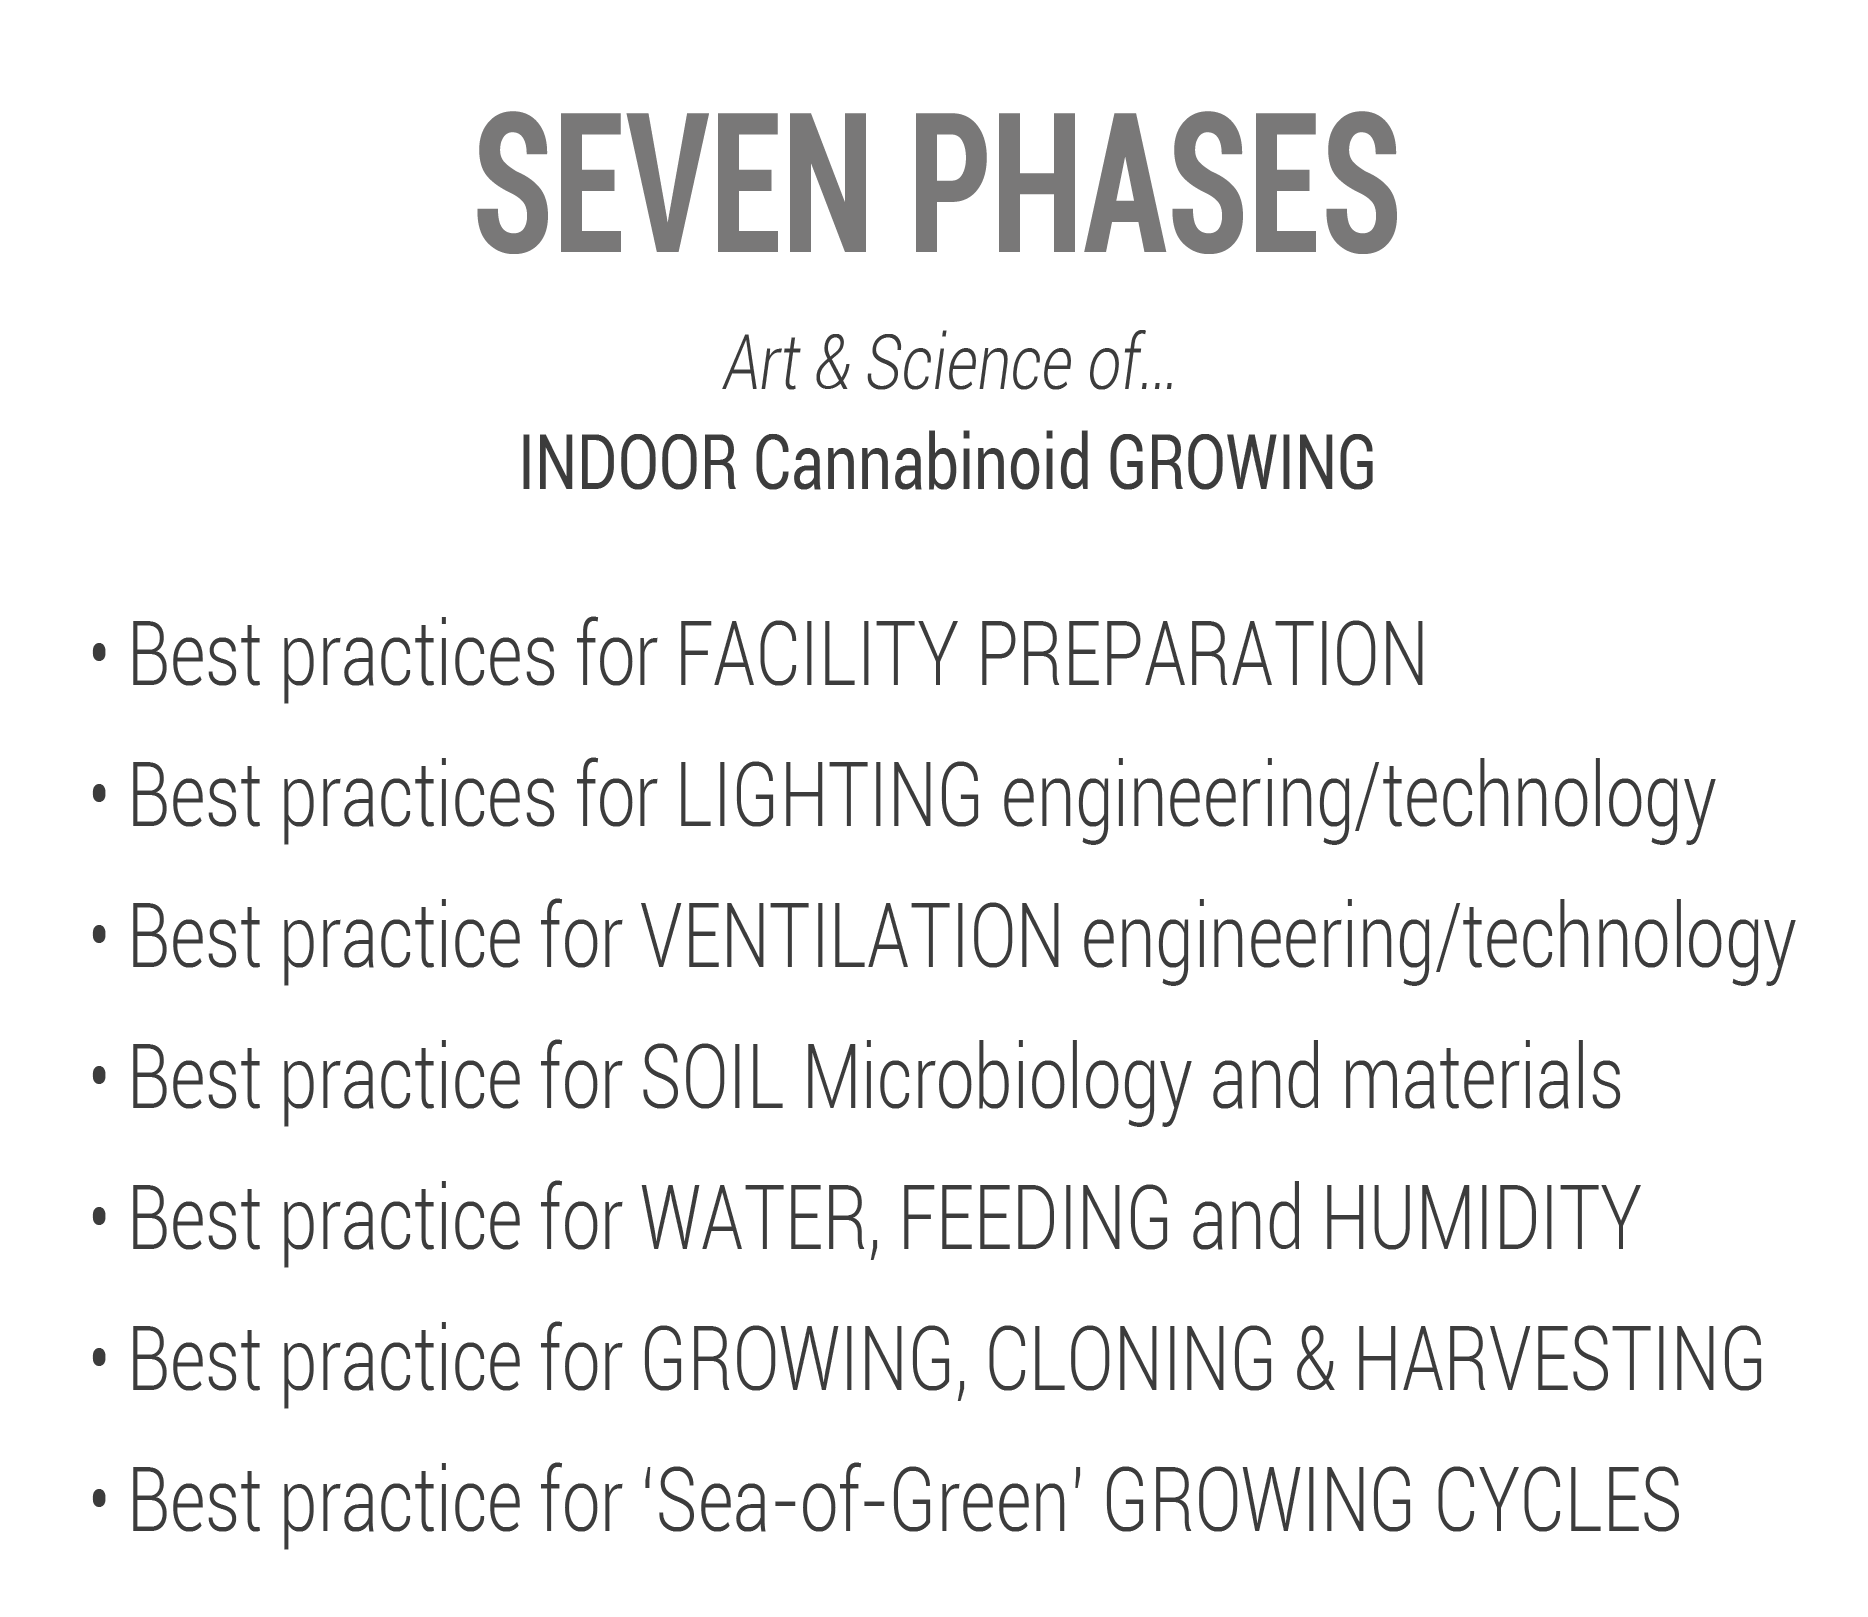 CHAR SEVEN PHASES